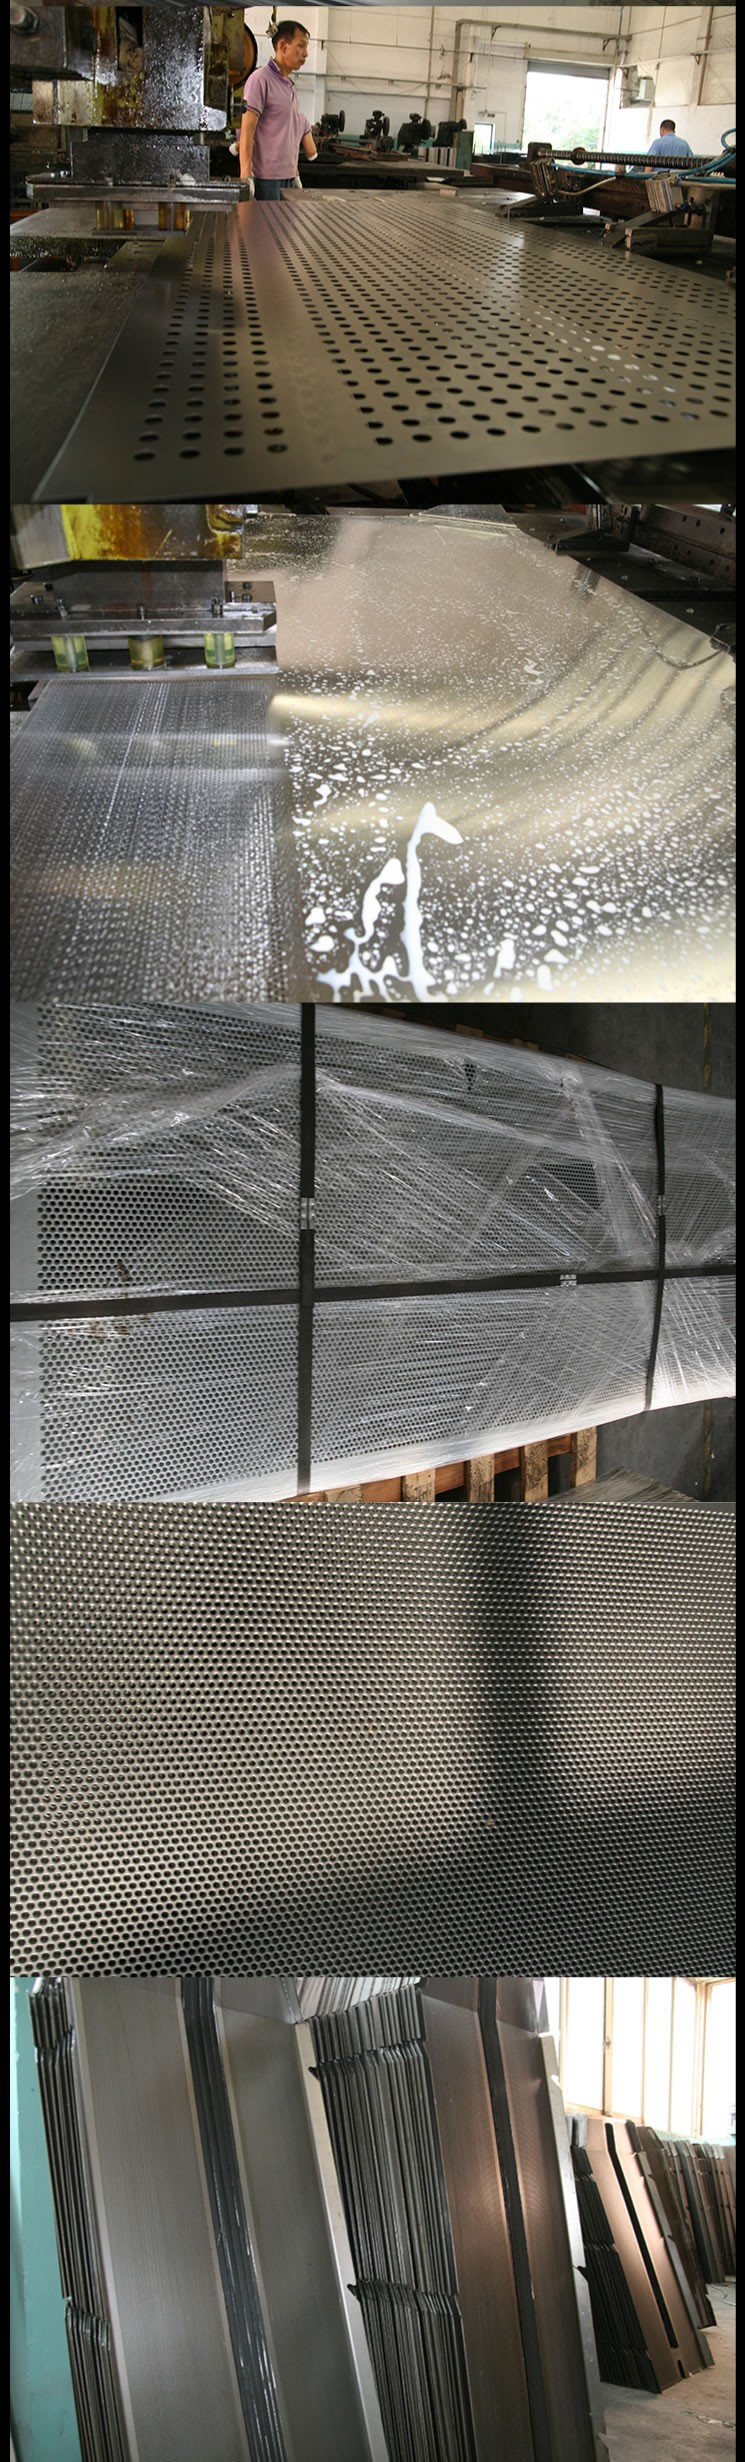 OEM stainless steel stainless Punch Plate 304 Perforated plates